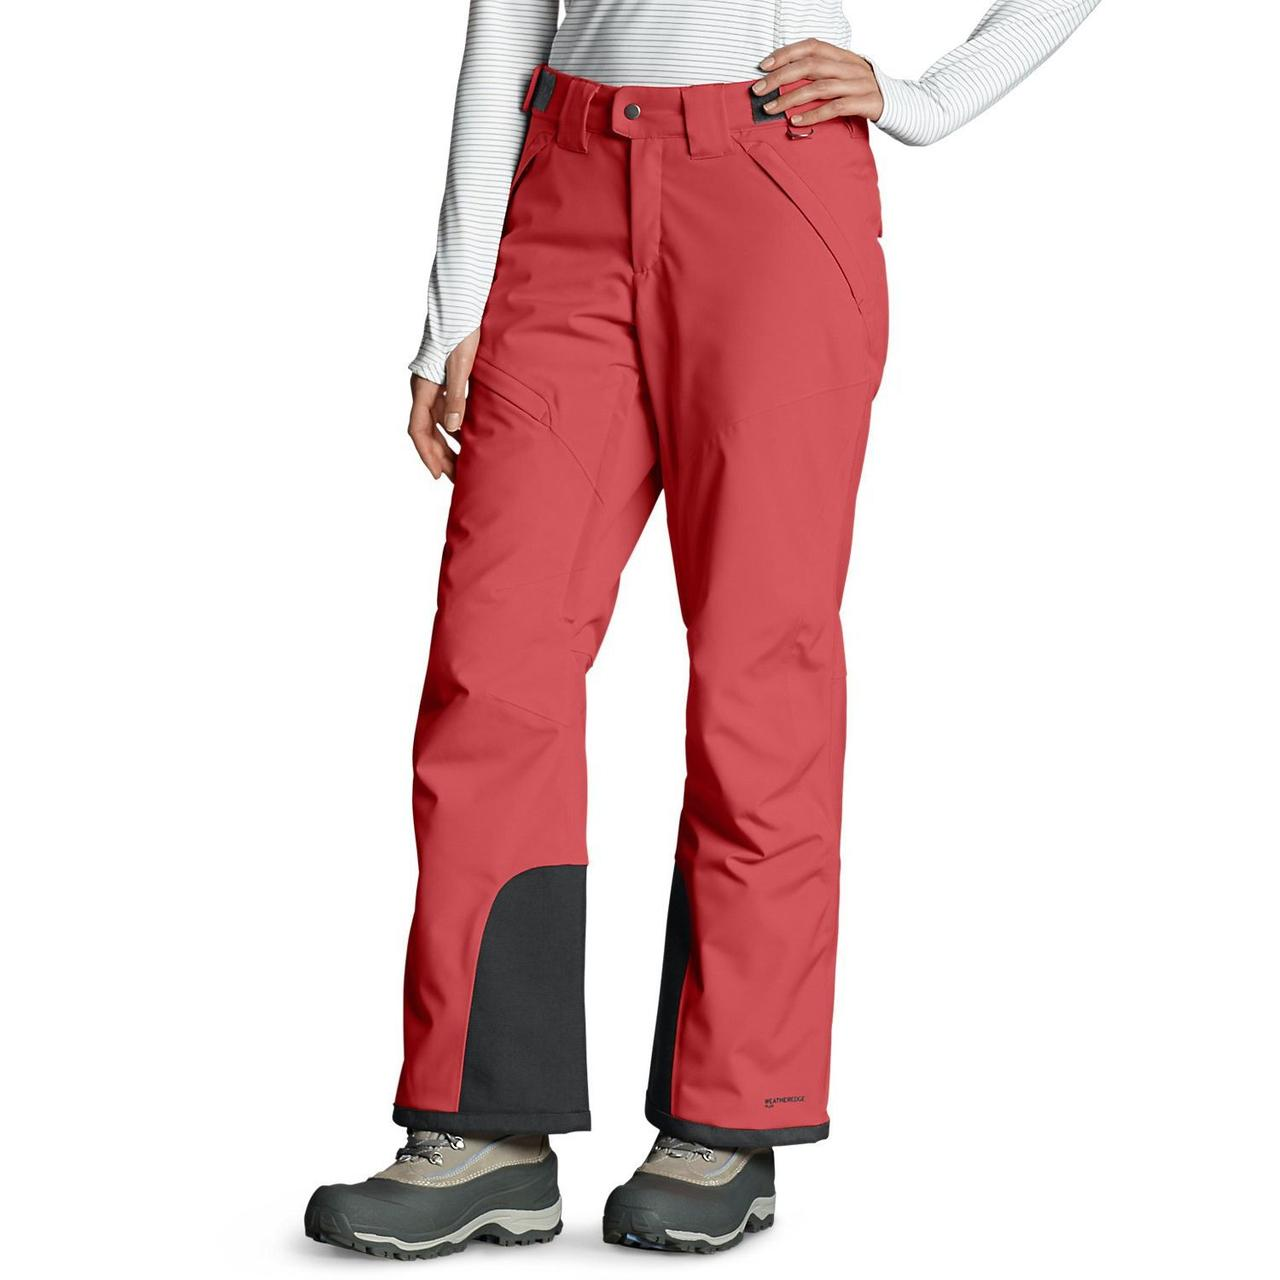 Спортивные штаны женские  Eddie Bauer Women Powder Search Insulated Pants BRIGHT CORAL